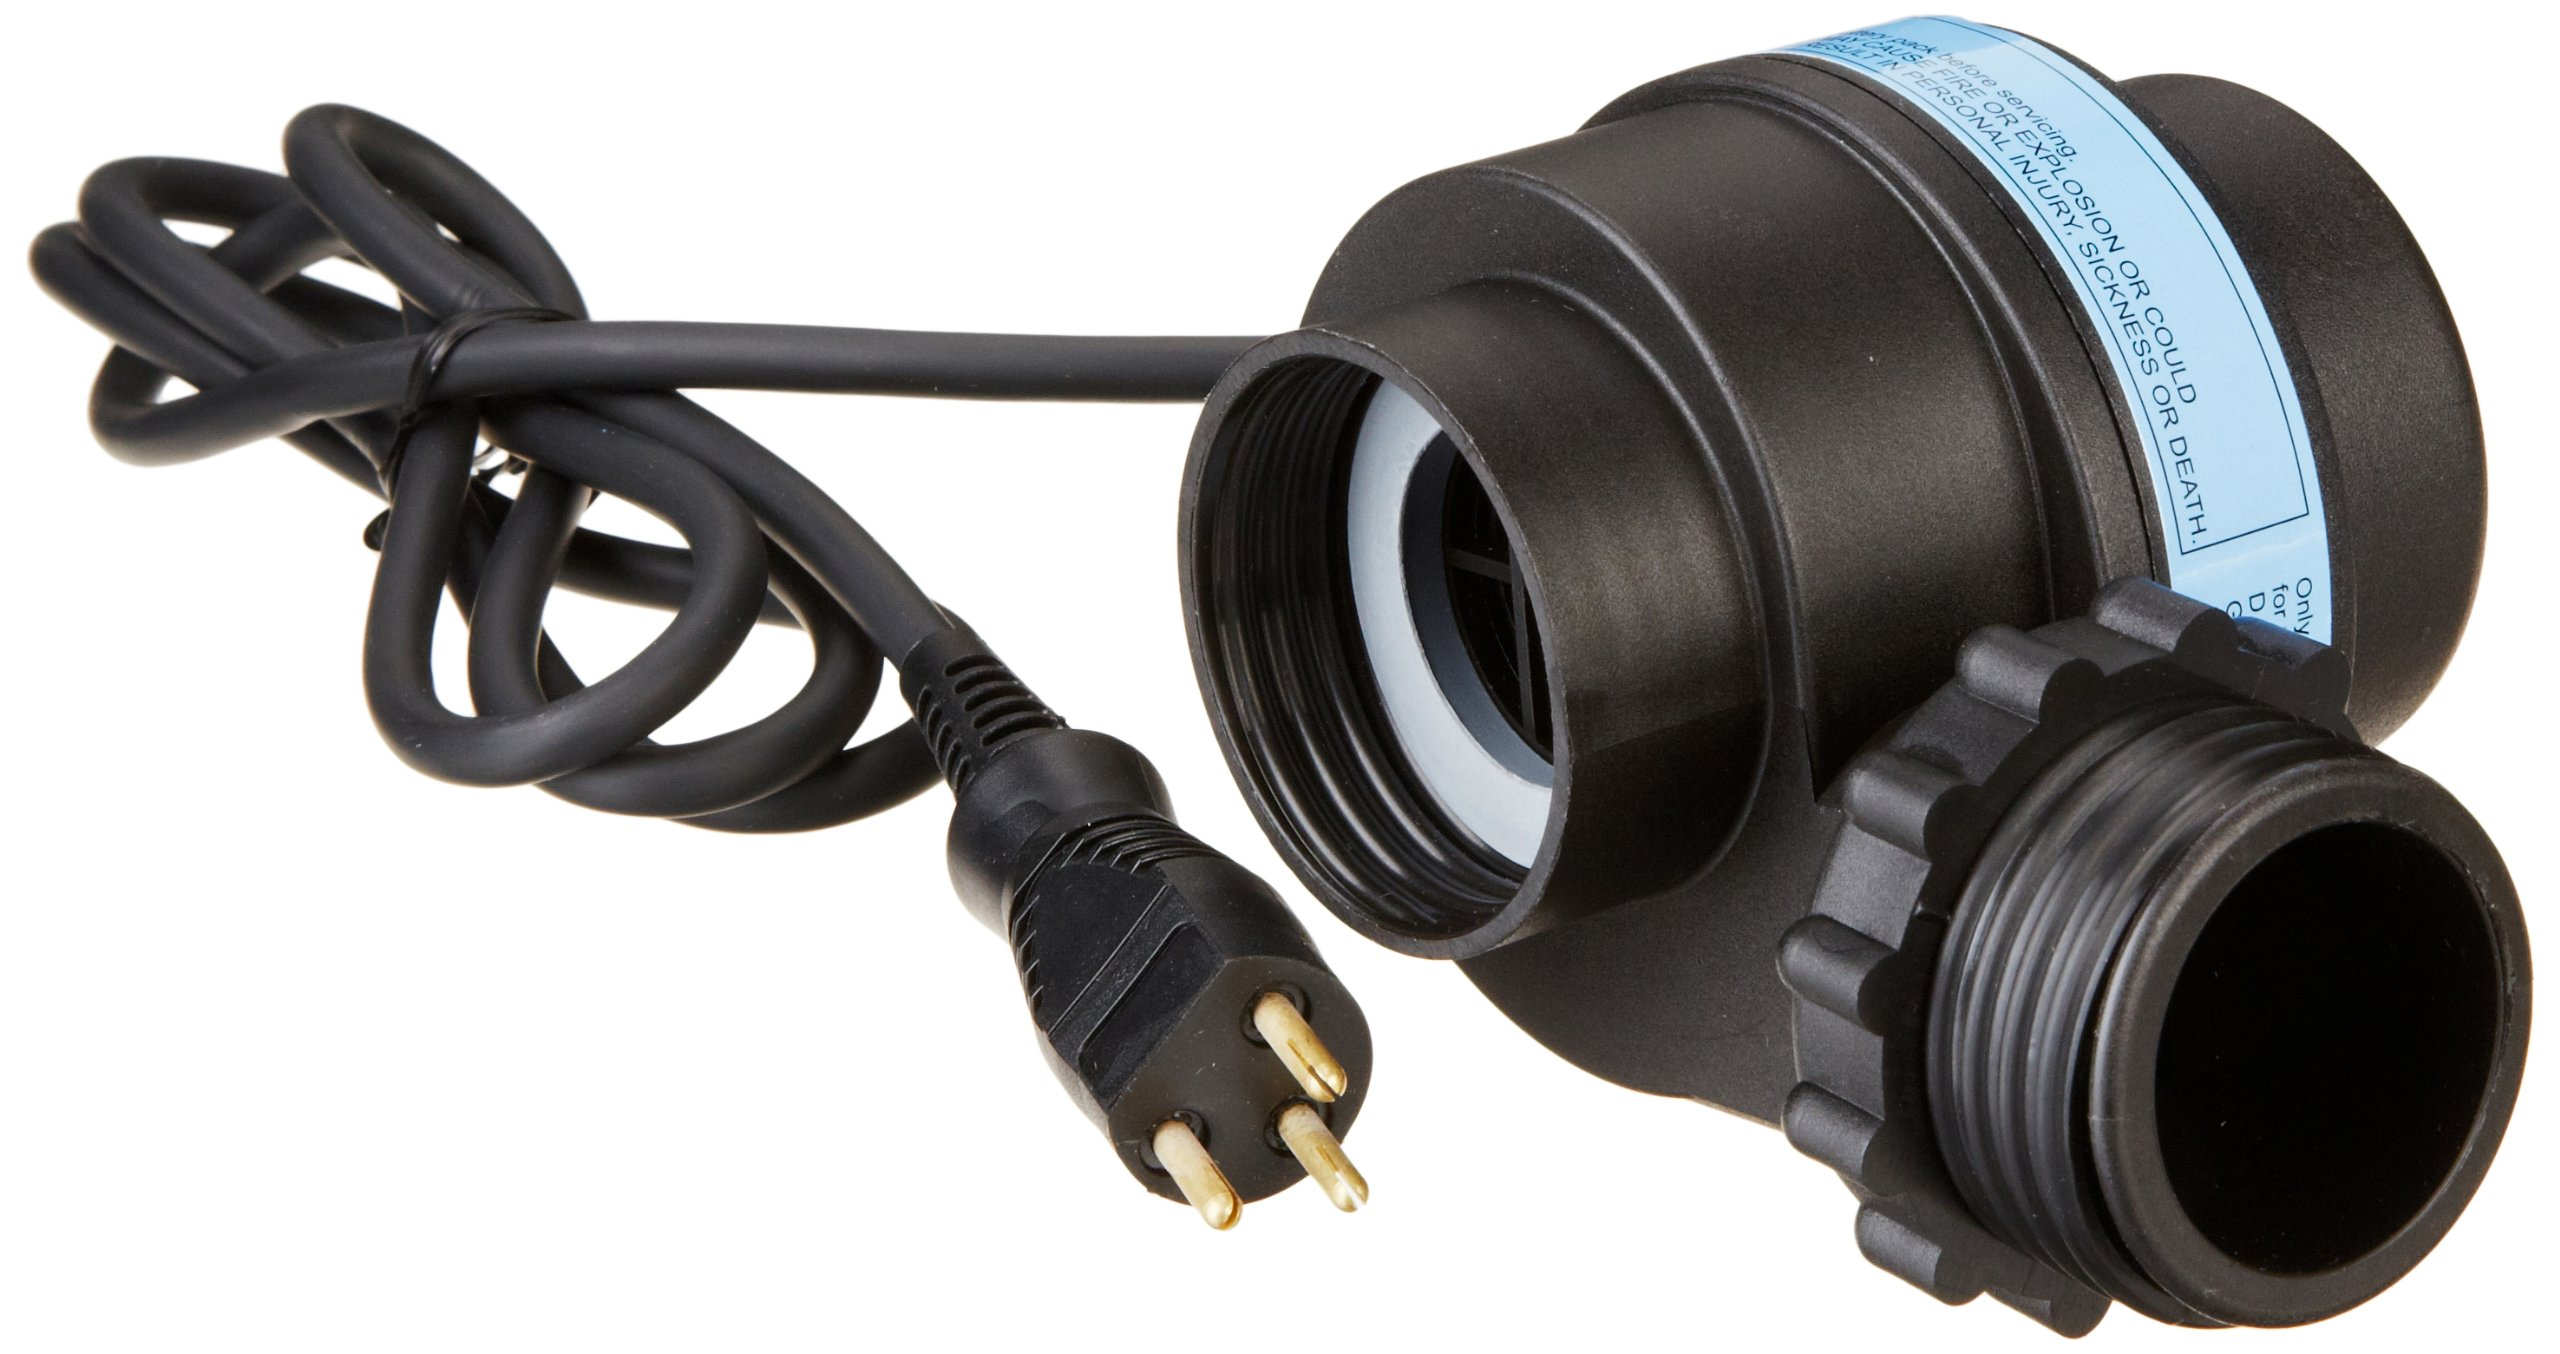 3M Powerflow Replacement Motor Blower Assembly 024-00-02R01, Face Mounted by 3M Personal Protective Equipment (Image #1)